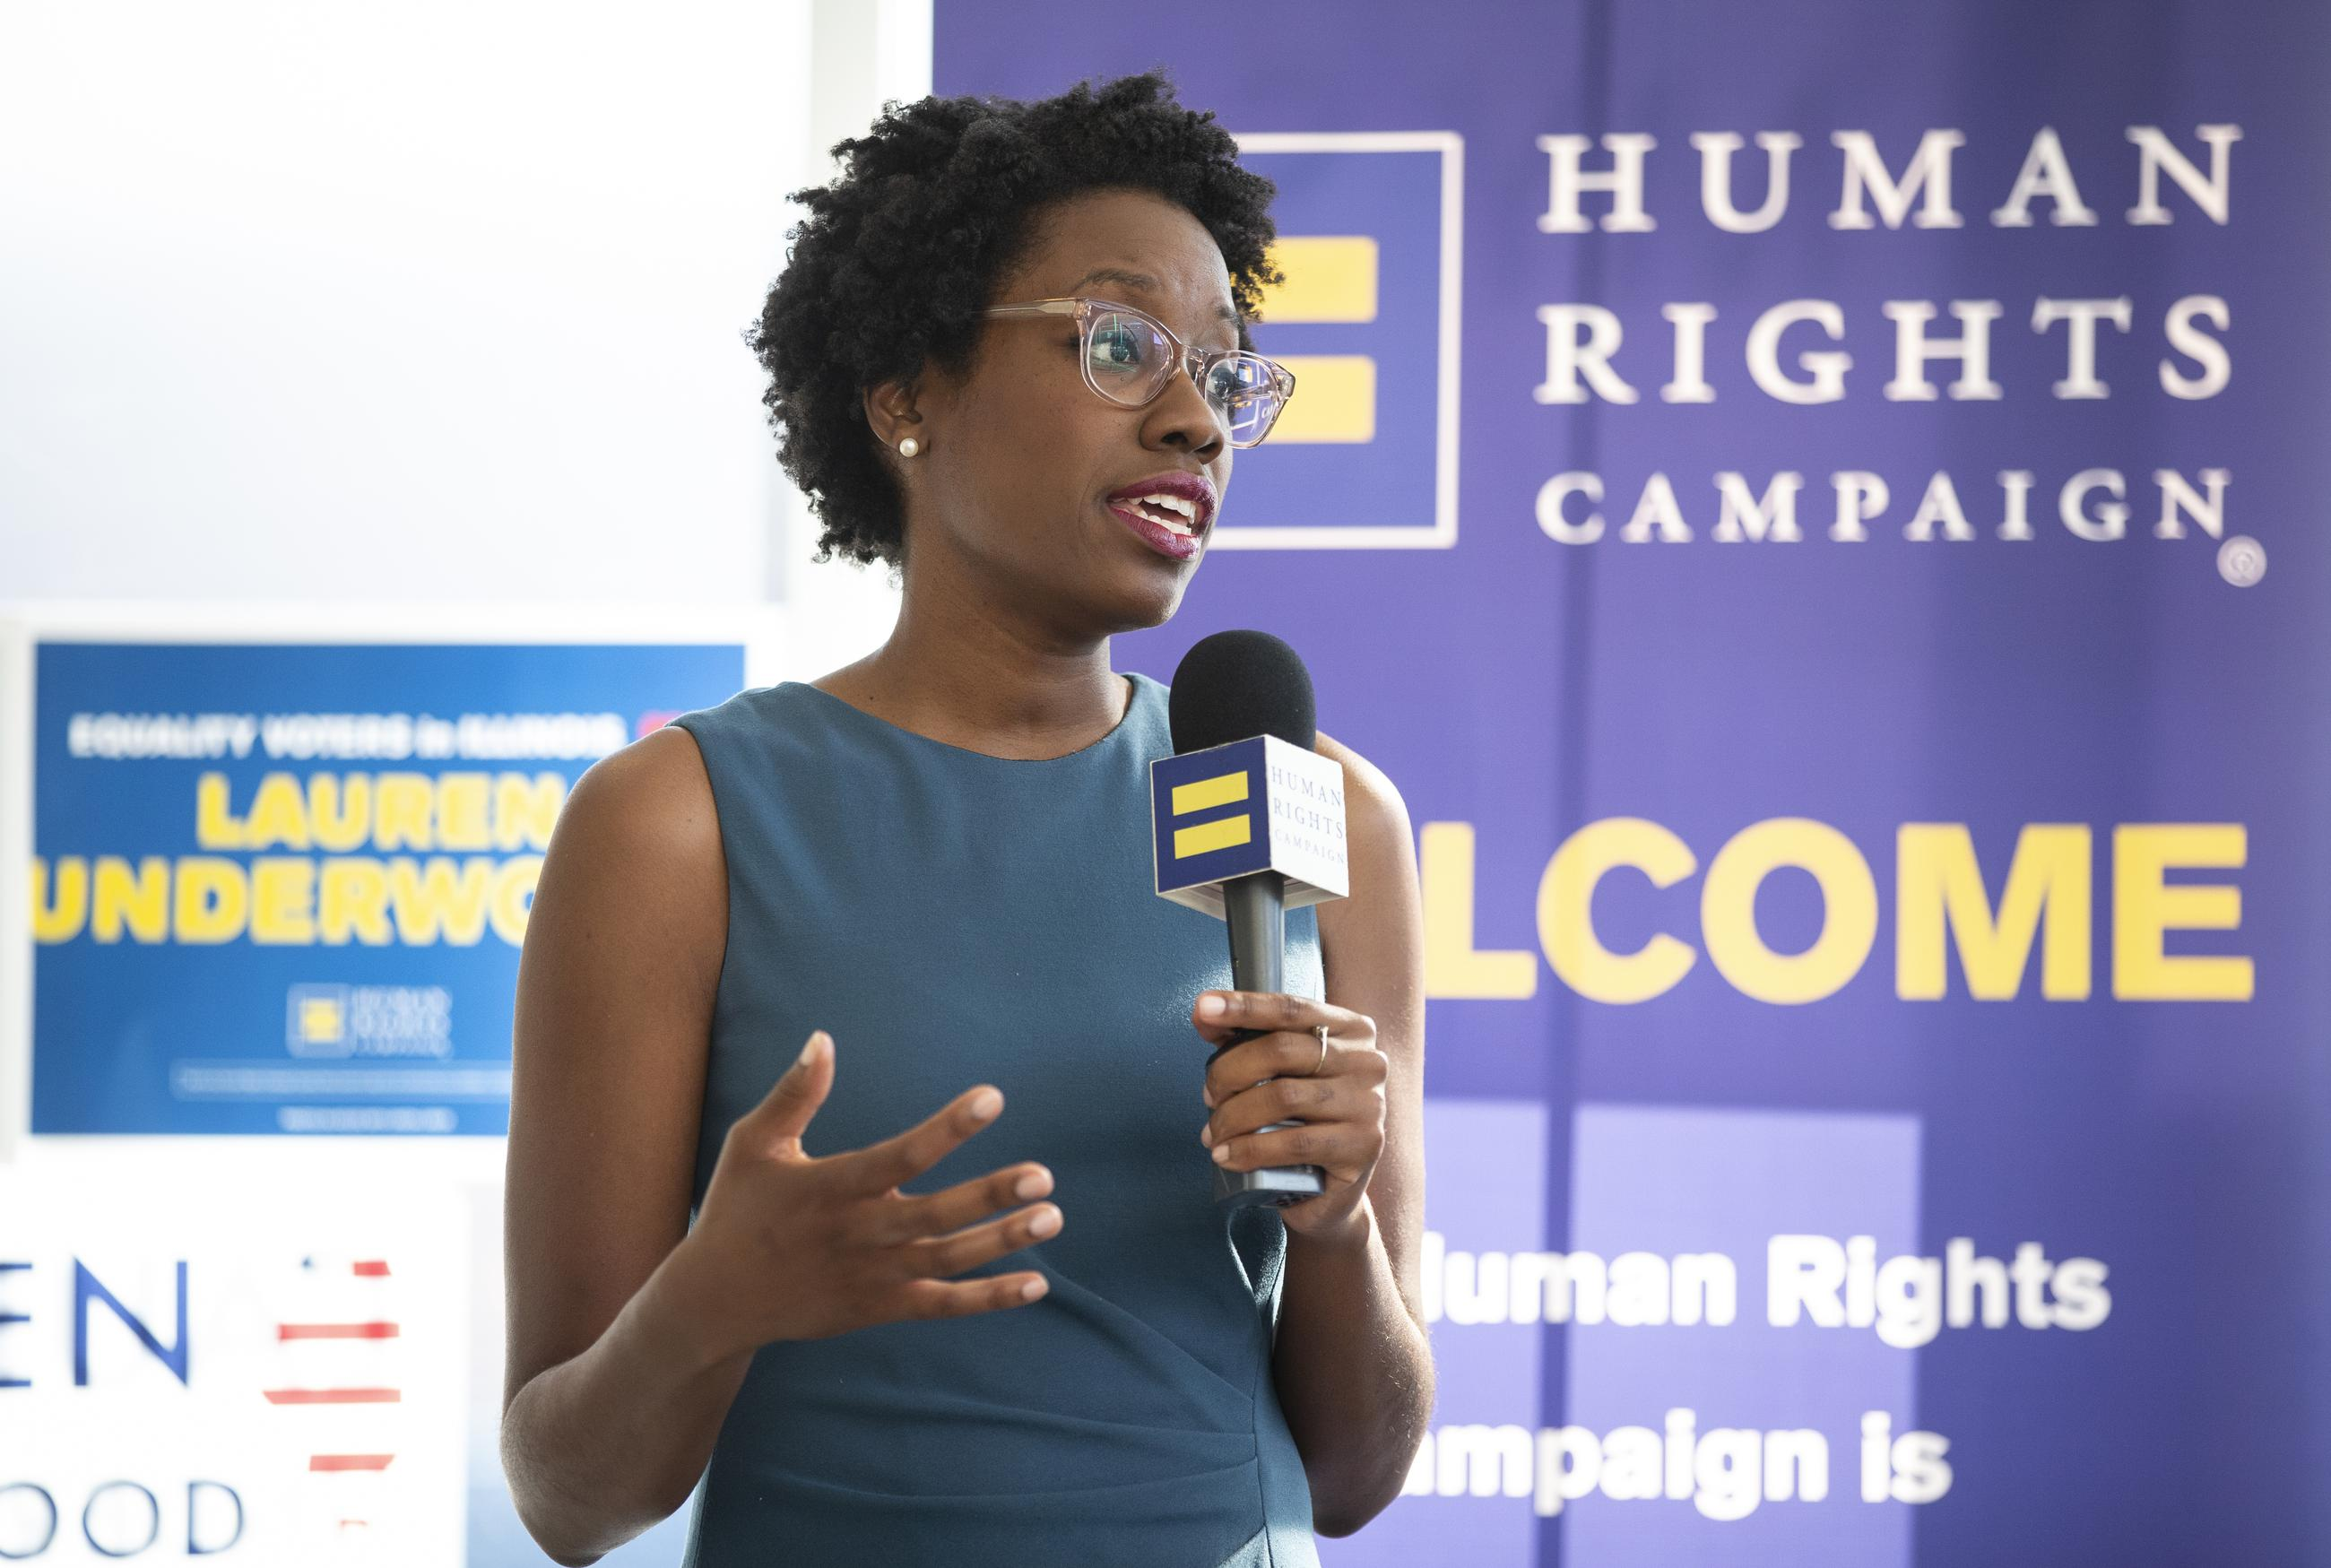 Request Interview w/ Lauren Underwood (D. IL 14th District, HR)